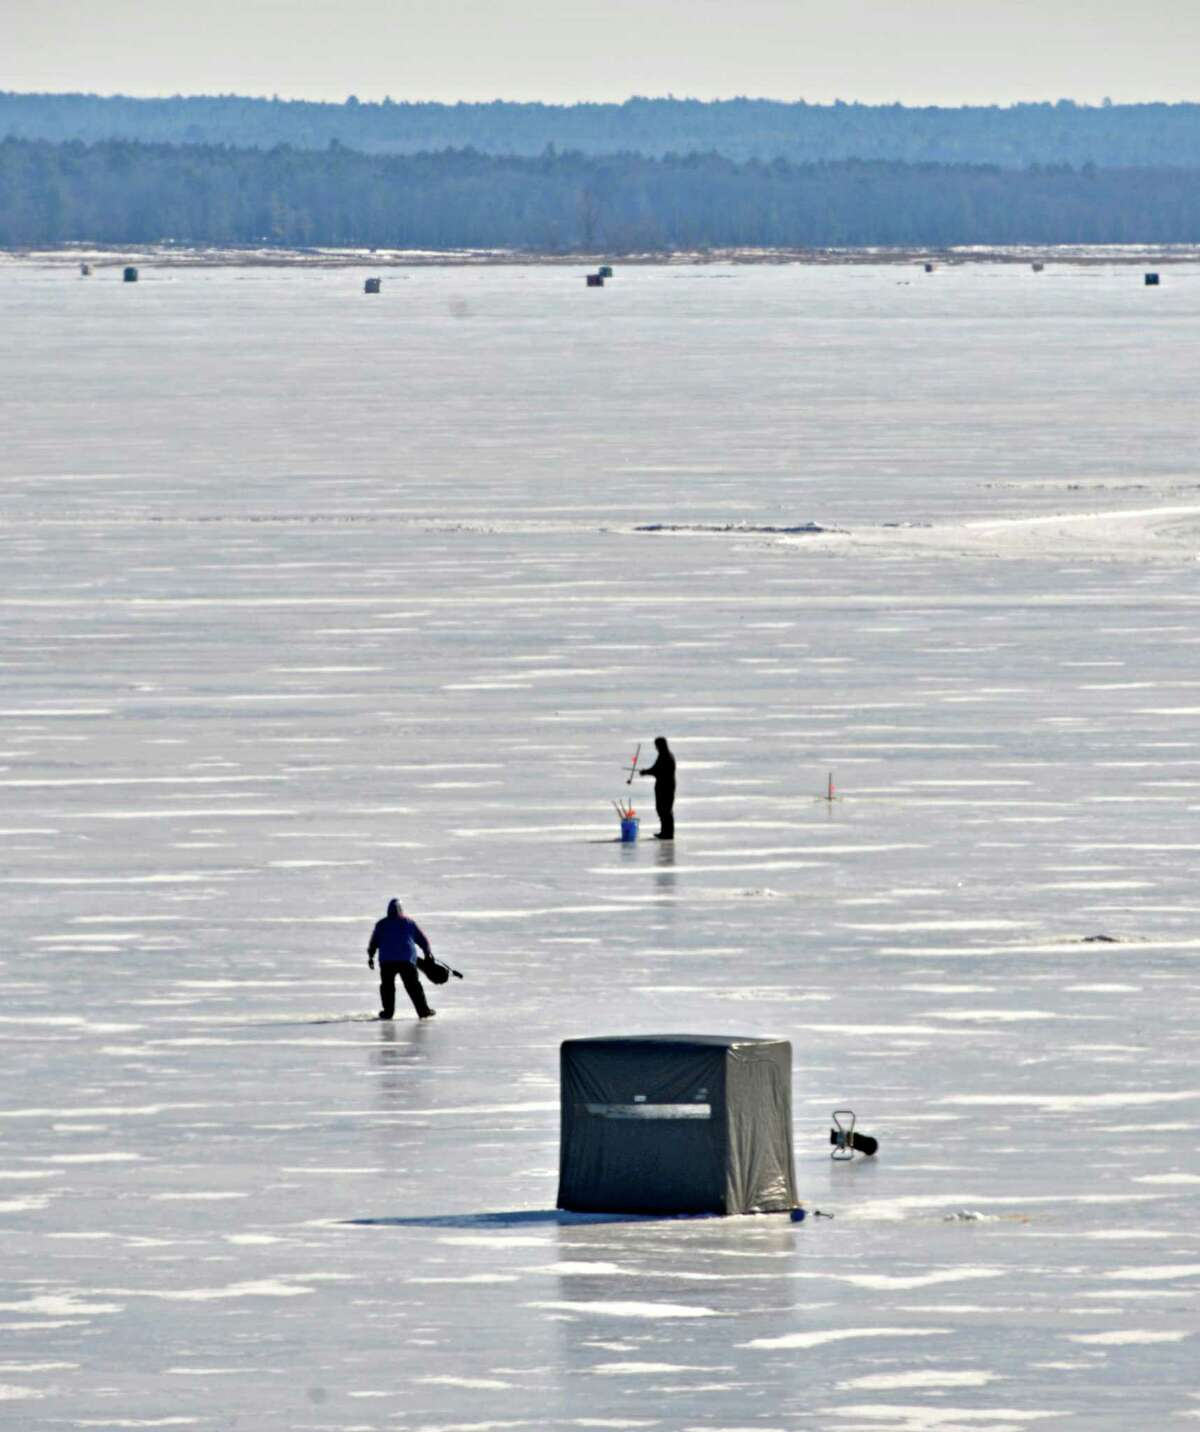 Ice fisherman try their luck on the Great Sacandaga Lake Tuesday Feb. 5, 2013. (John Carl D'Annibale / Times Union)